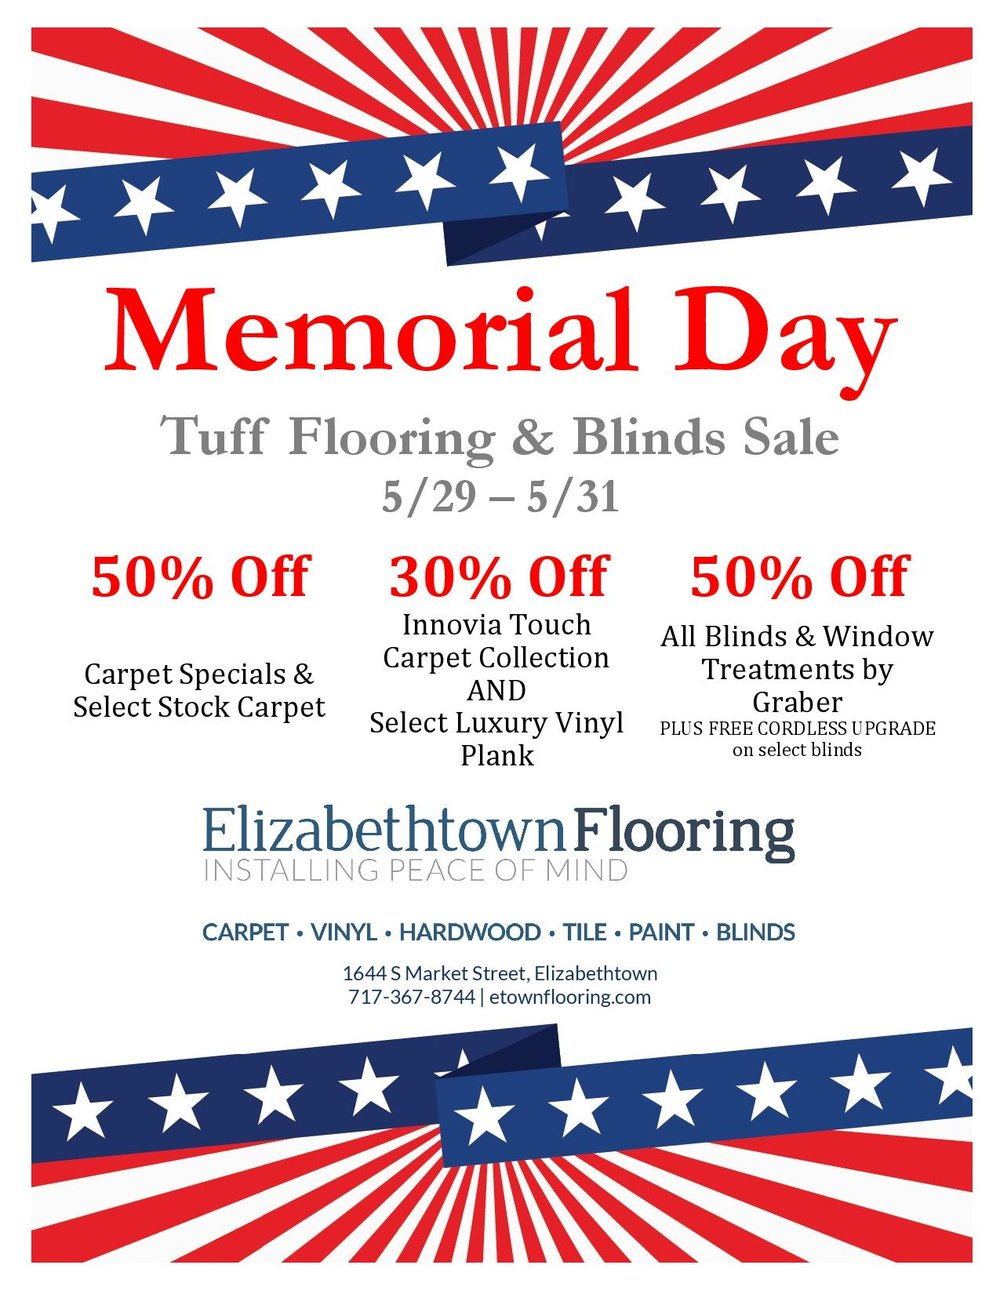 Memorial Day Tuff Flooring 2018 Sale Flyer1.jpg